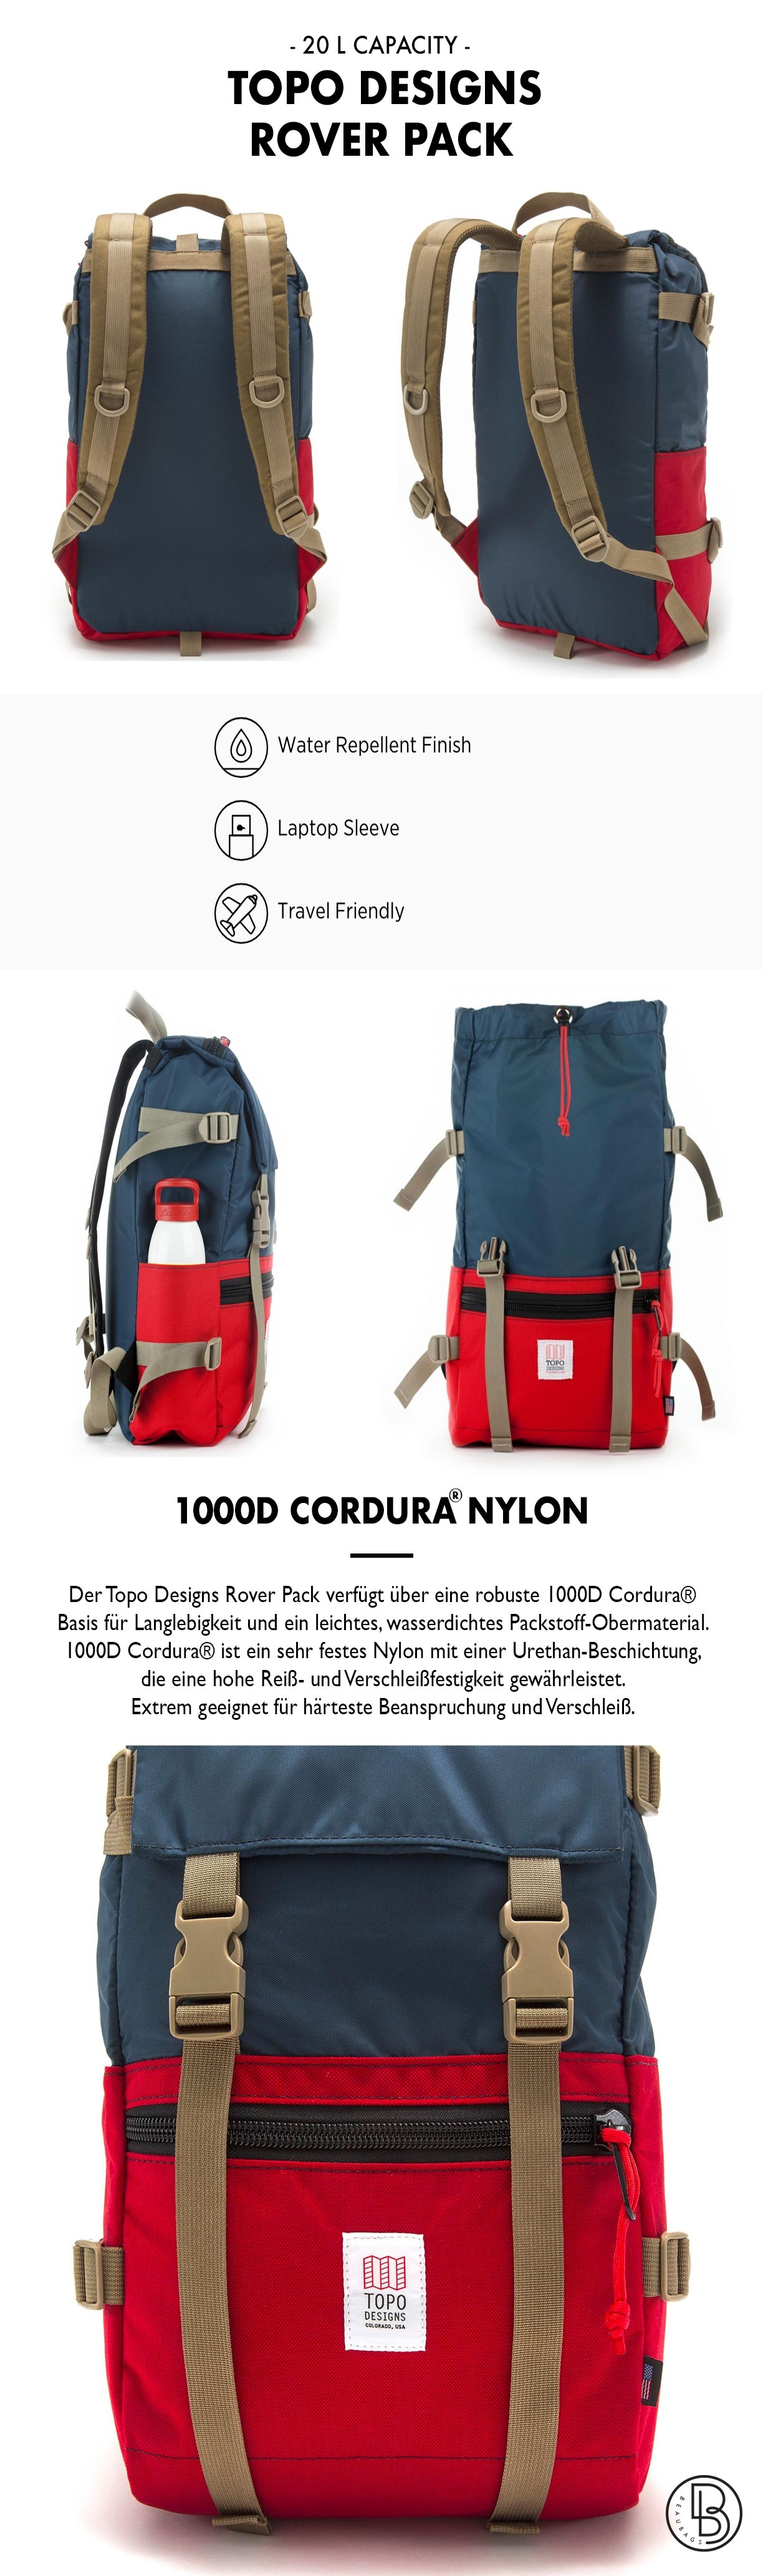 Topo Designs Rover Pack Produktinformationen